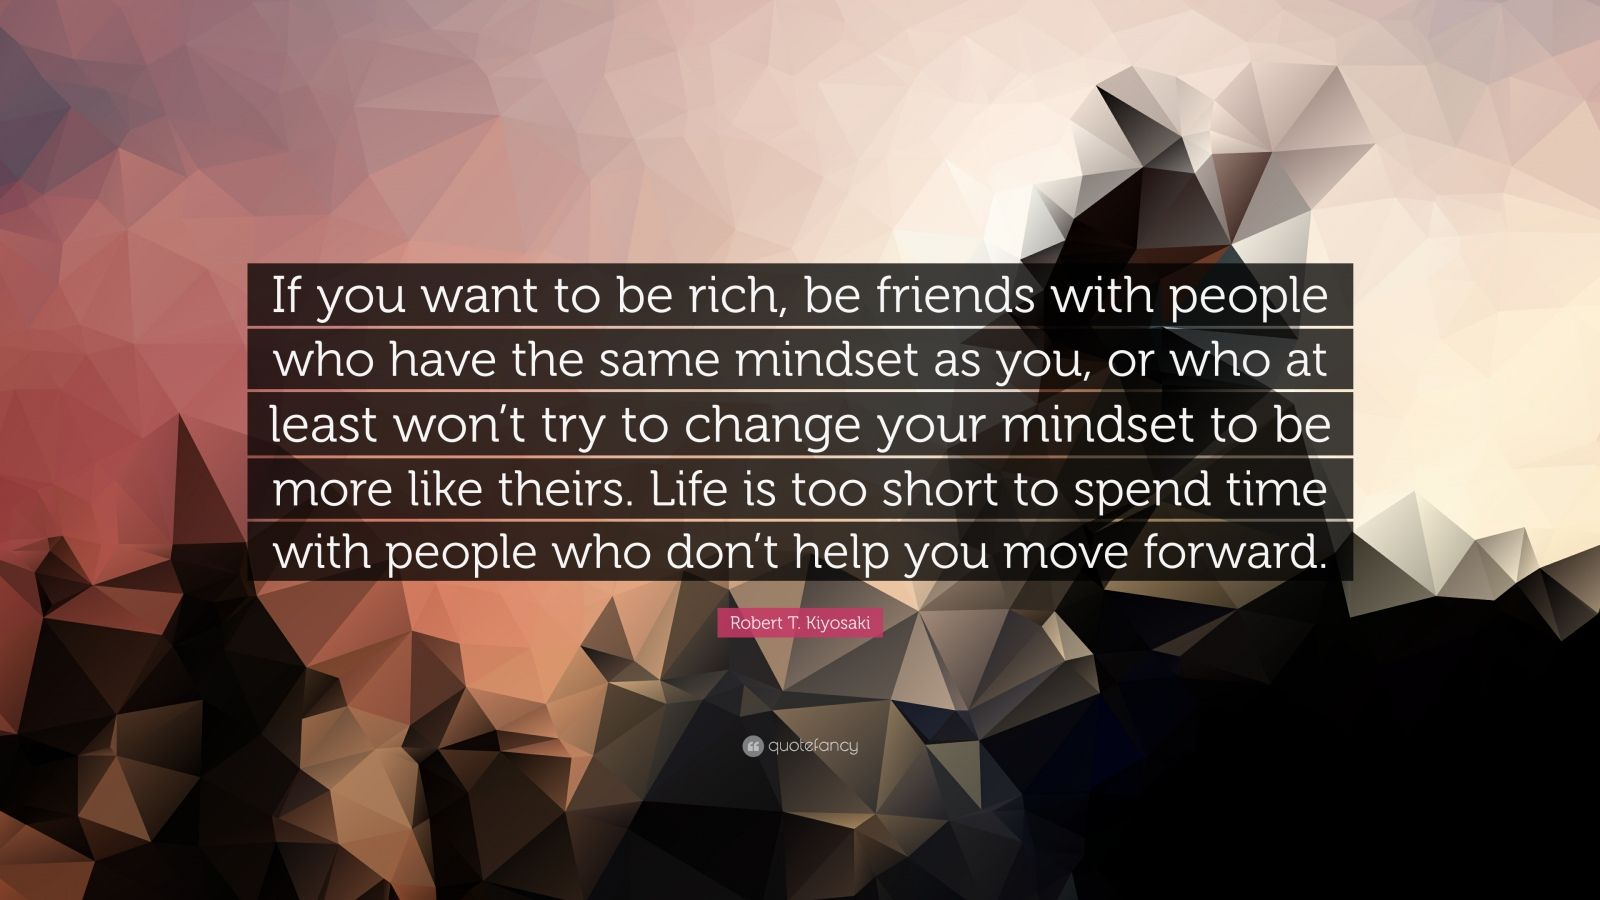 """Robert T. Kiyosaki Quote: """"If you want to be rich, be friends with people who have the same mindset as you, or who at least won't try to change your mindset to be more like theirs. Life is too short to spend time with people who don't help you move forward."""""""